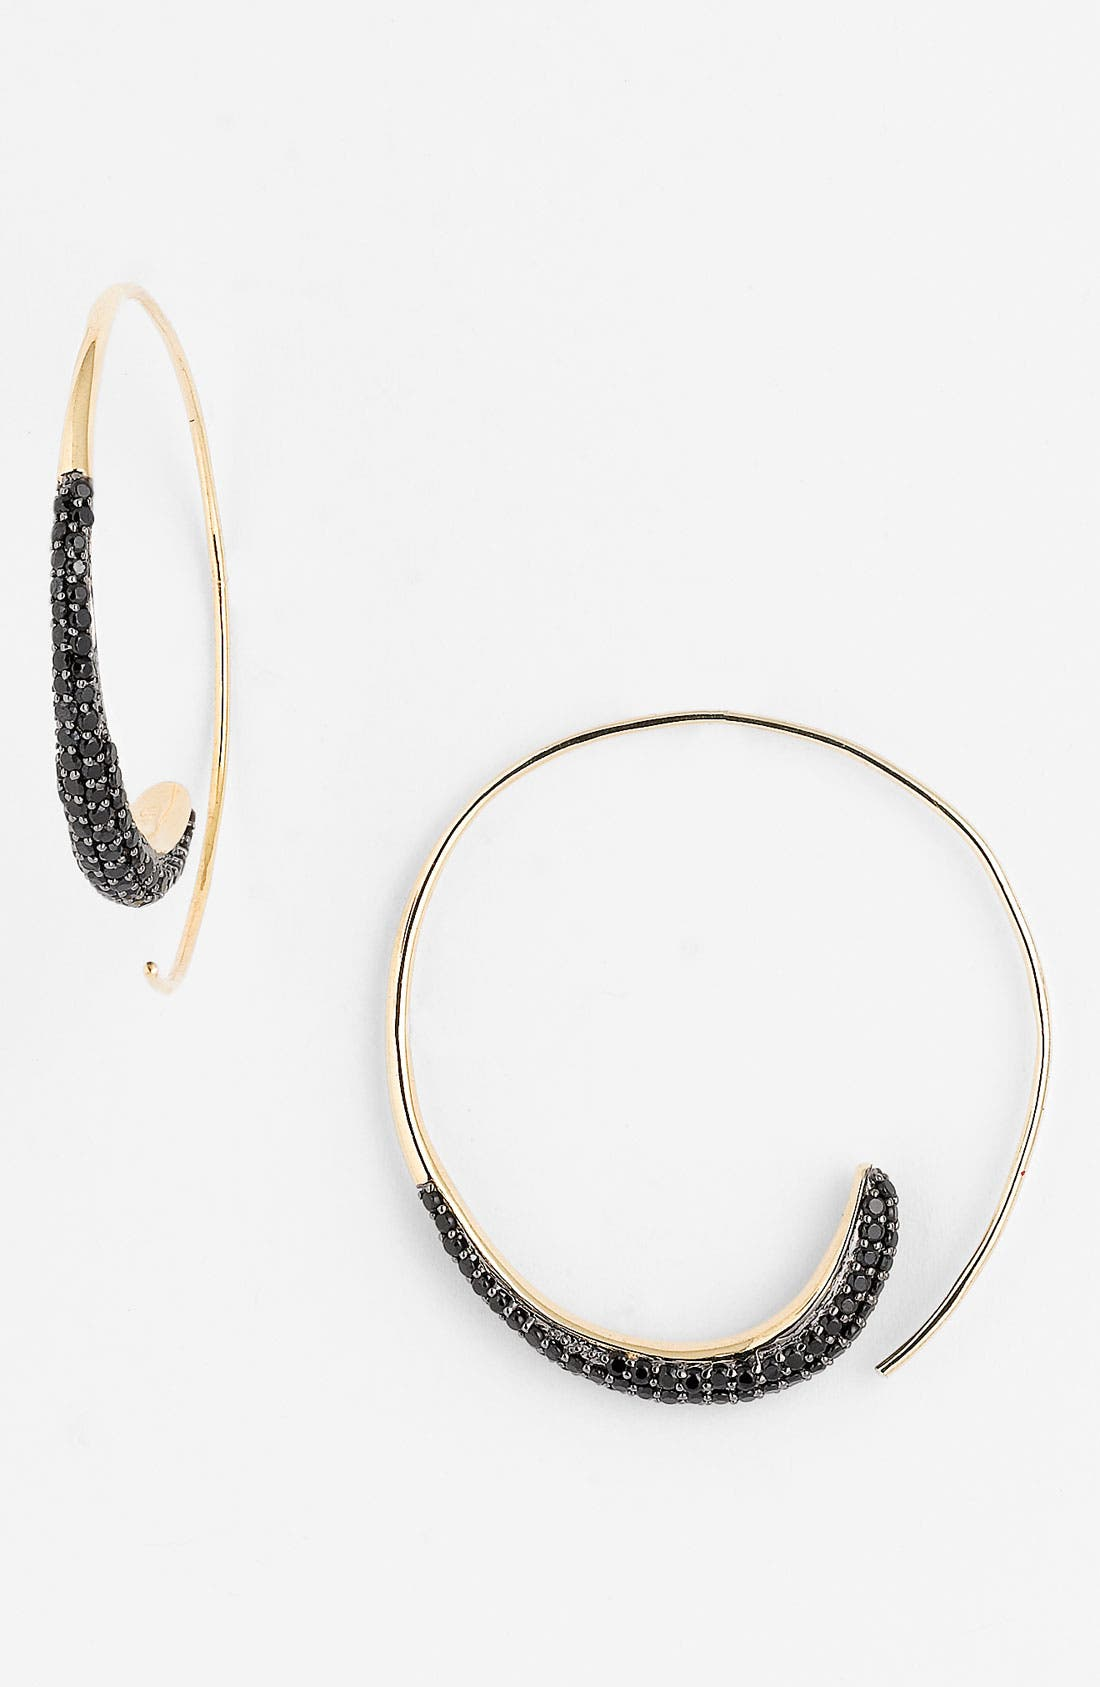 Alternate Image 1 Selected - Tom Binns 'Bejewelled' Swirl Hoop Earrings